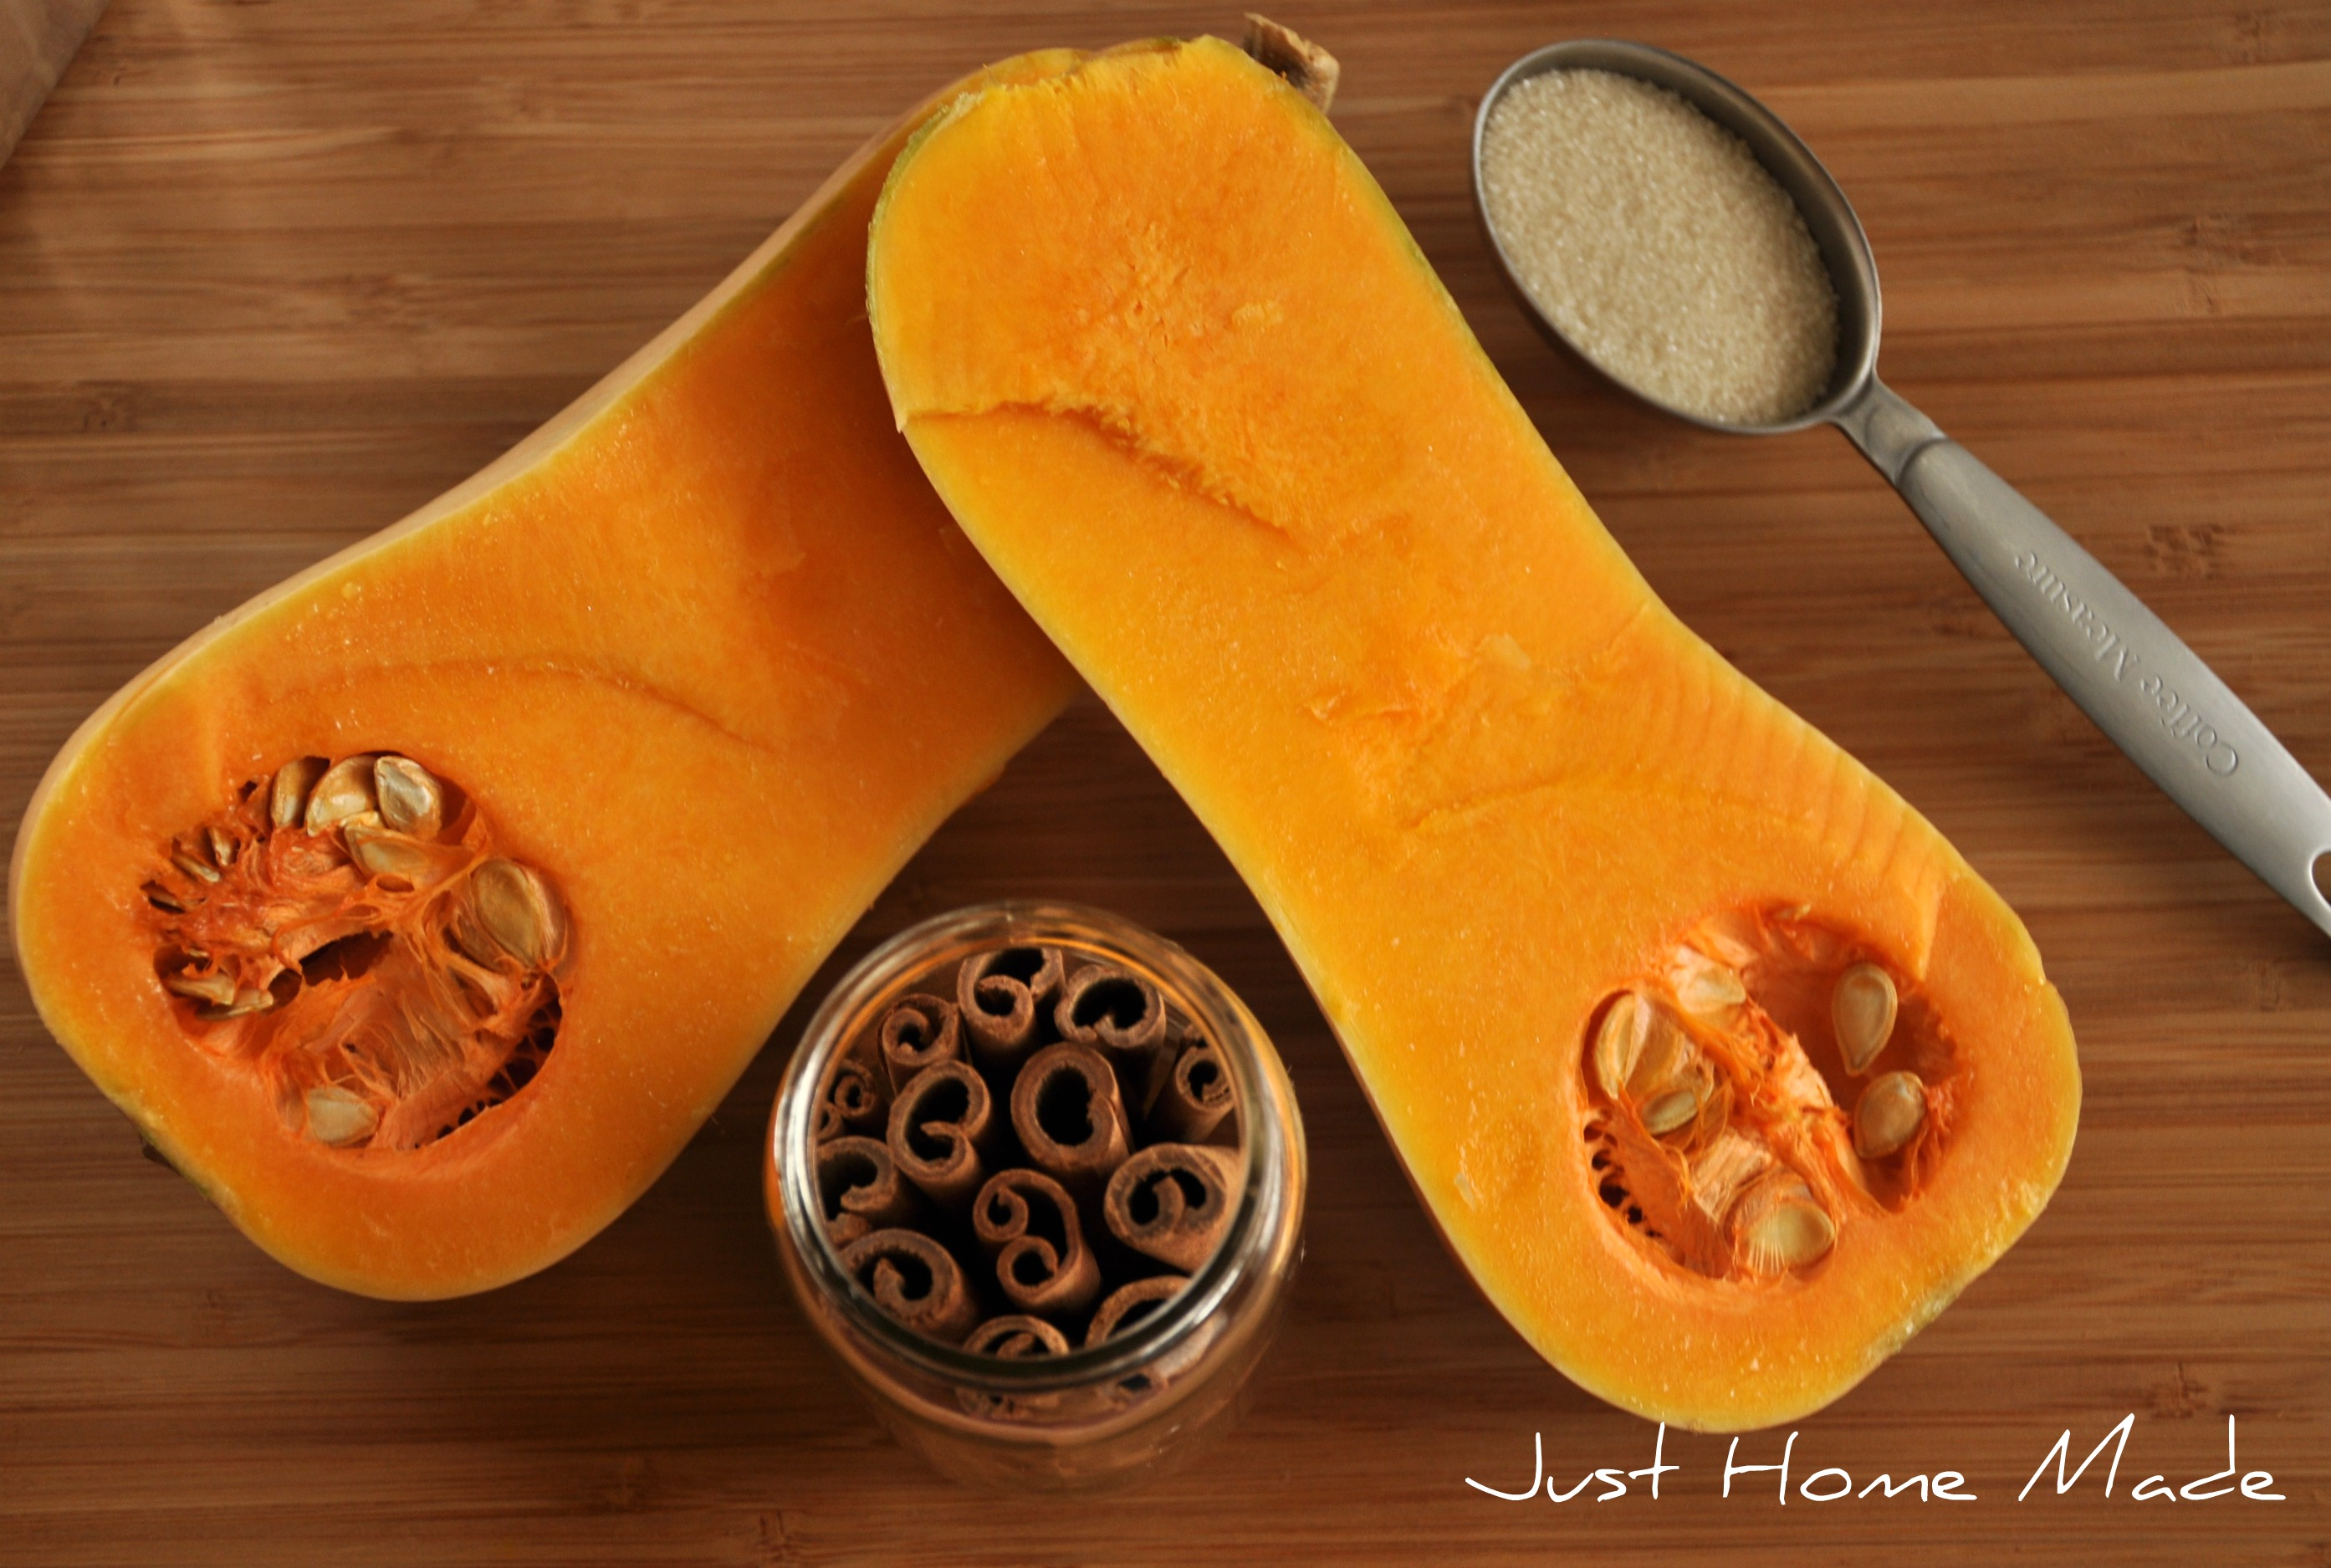 butternut squash Butternut squash is incredibly versatile it lends an autumnal, pumpkin-y flavor to everything from risotto to soup unlike the seasonal produce of summer.